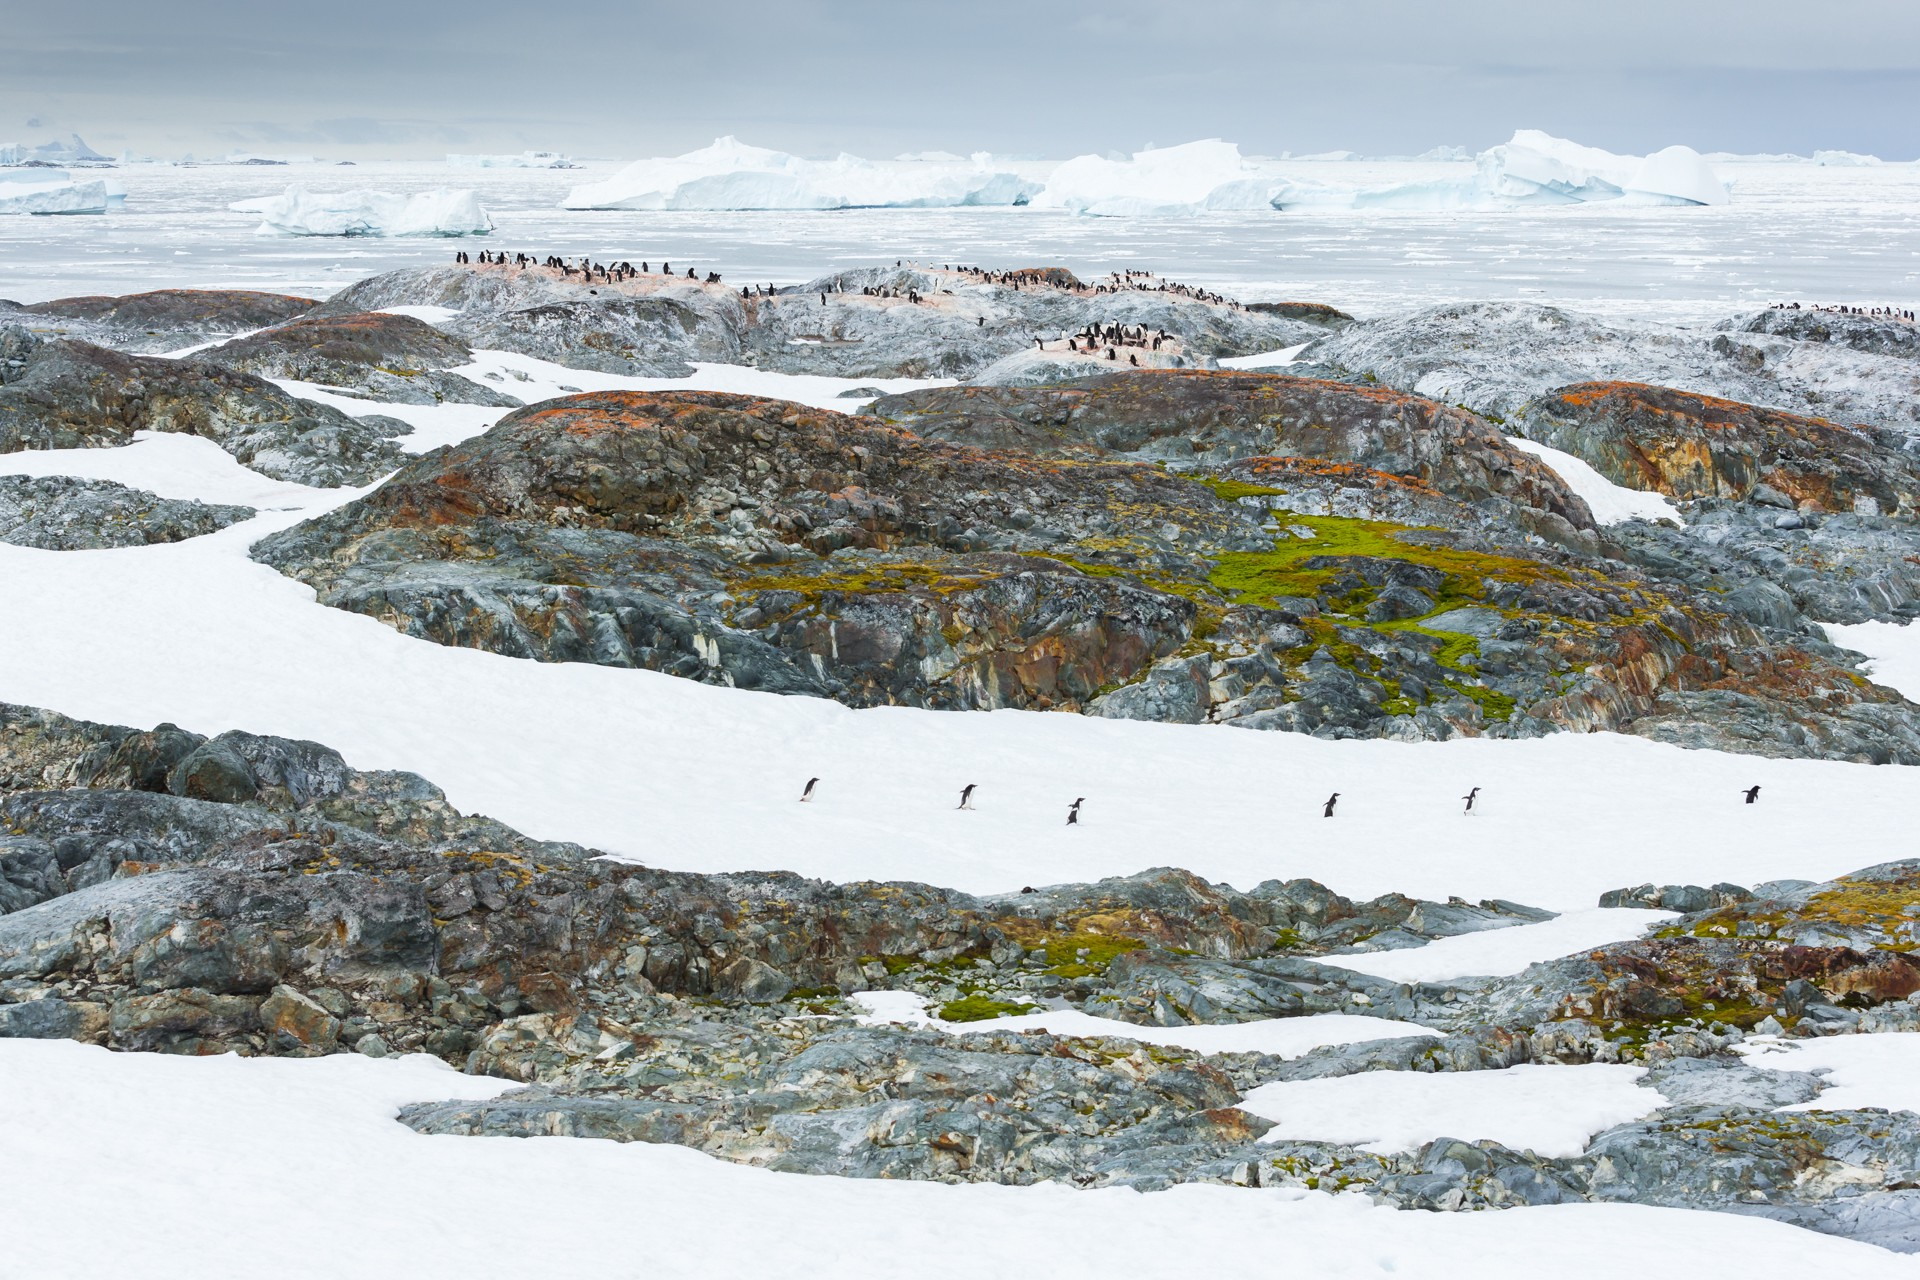 Penguins march in the Antarctic circle.